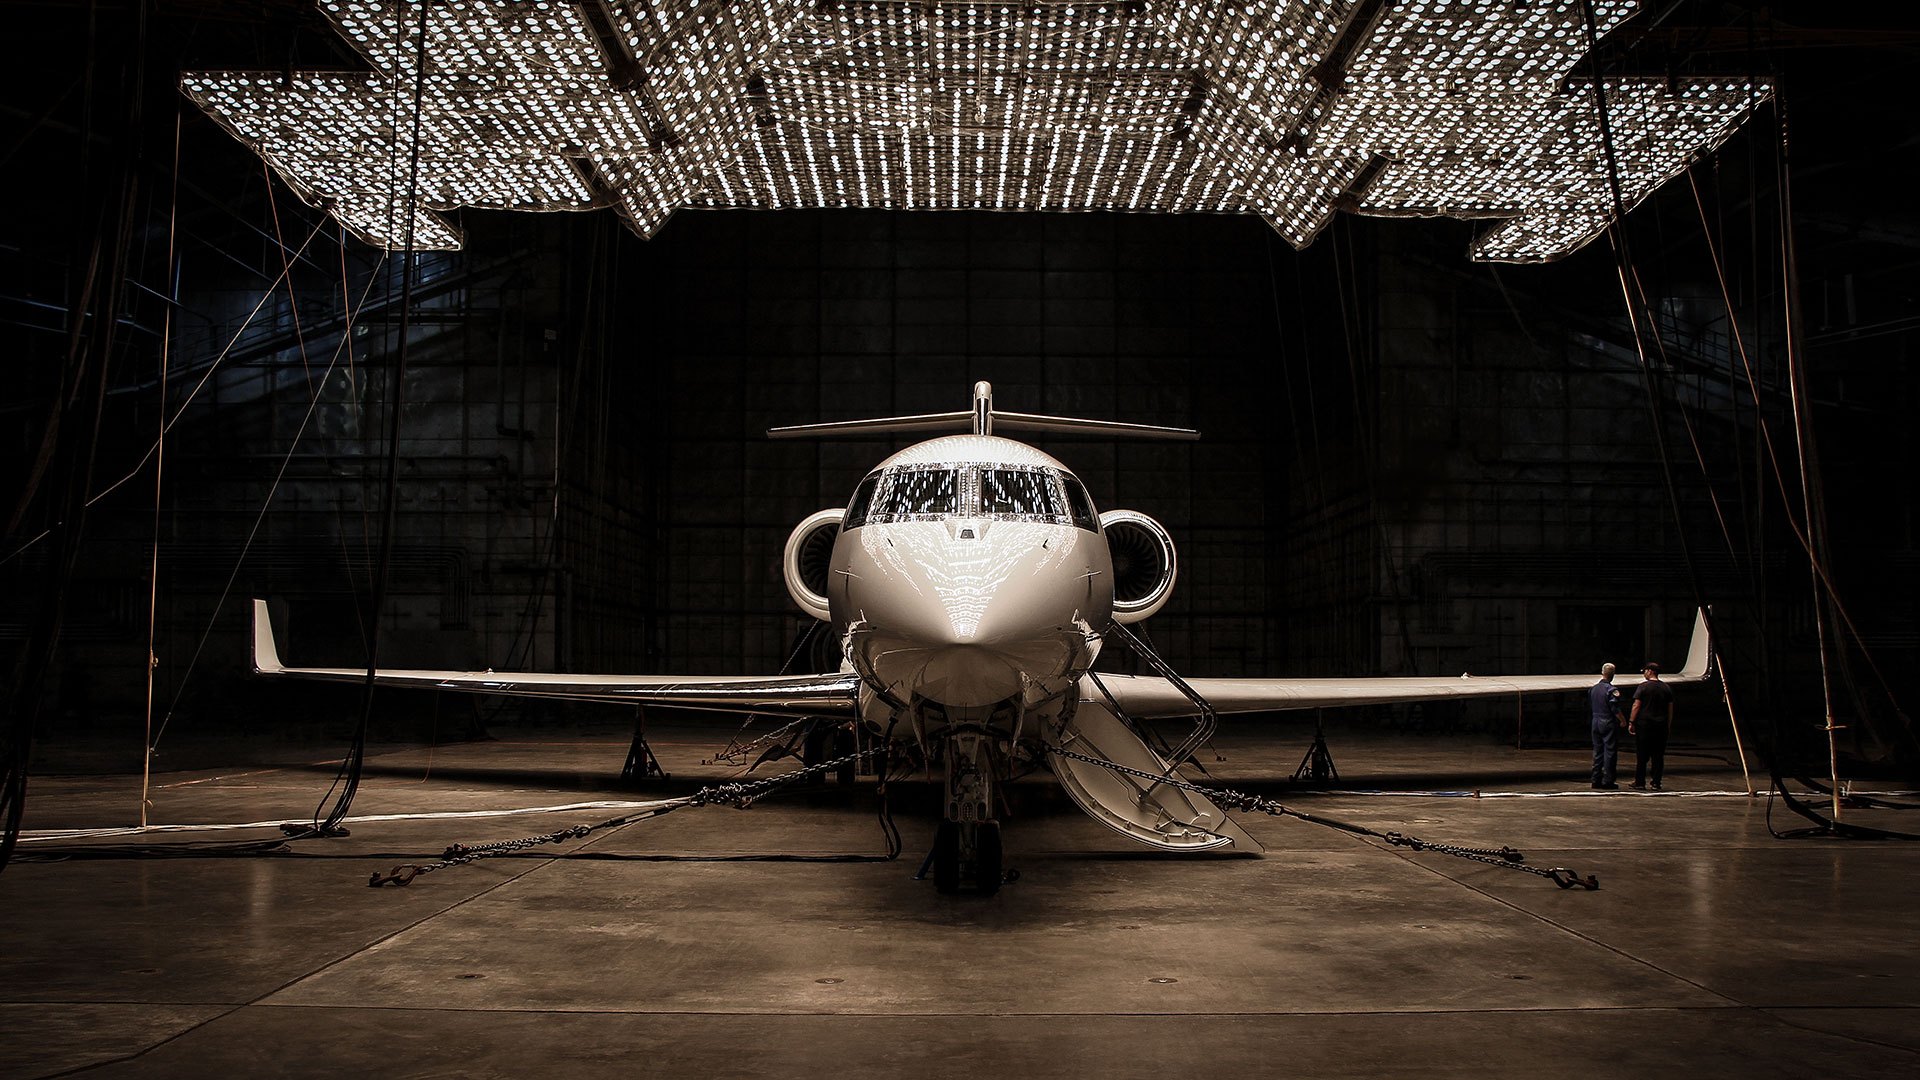 G500 Climatic Heat Test shows aircraft under many lights